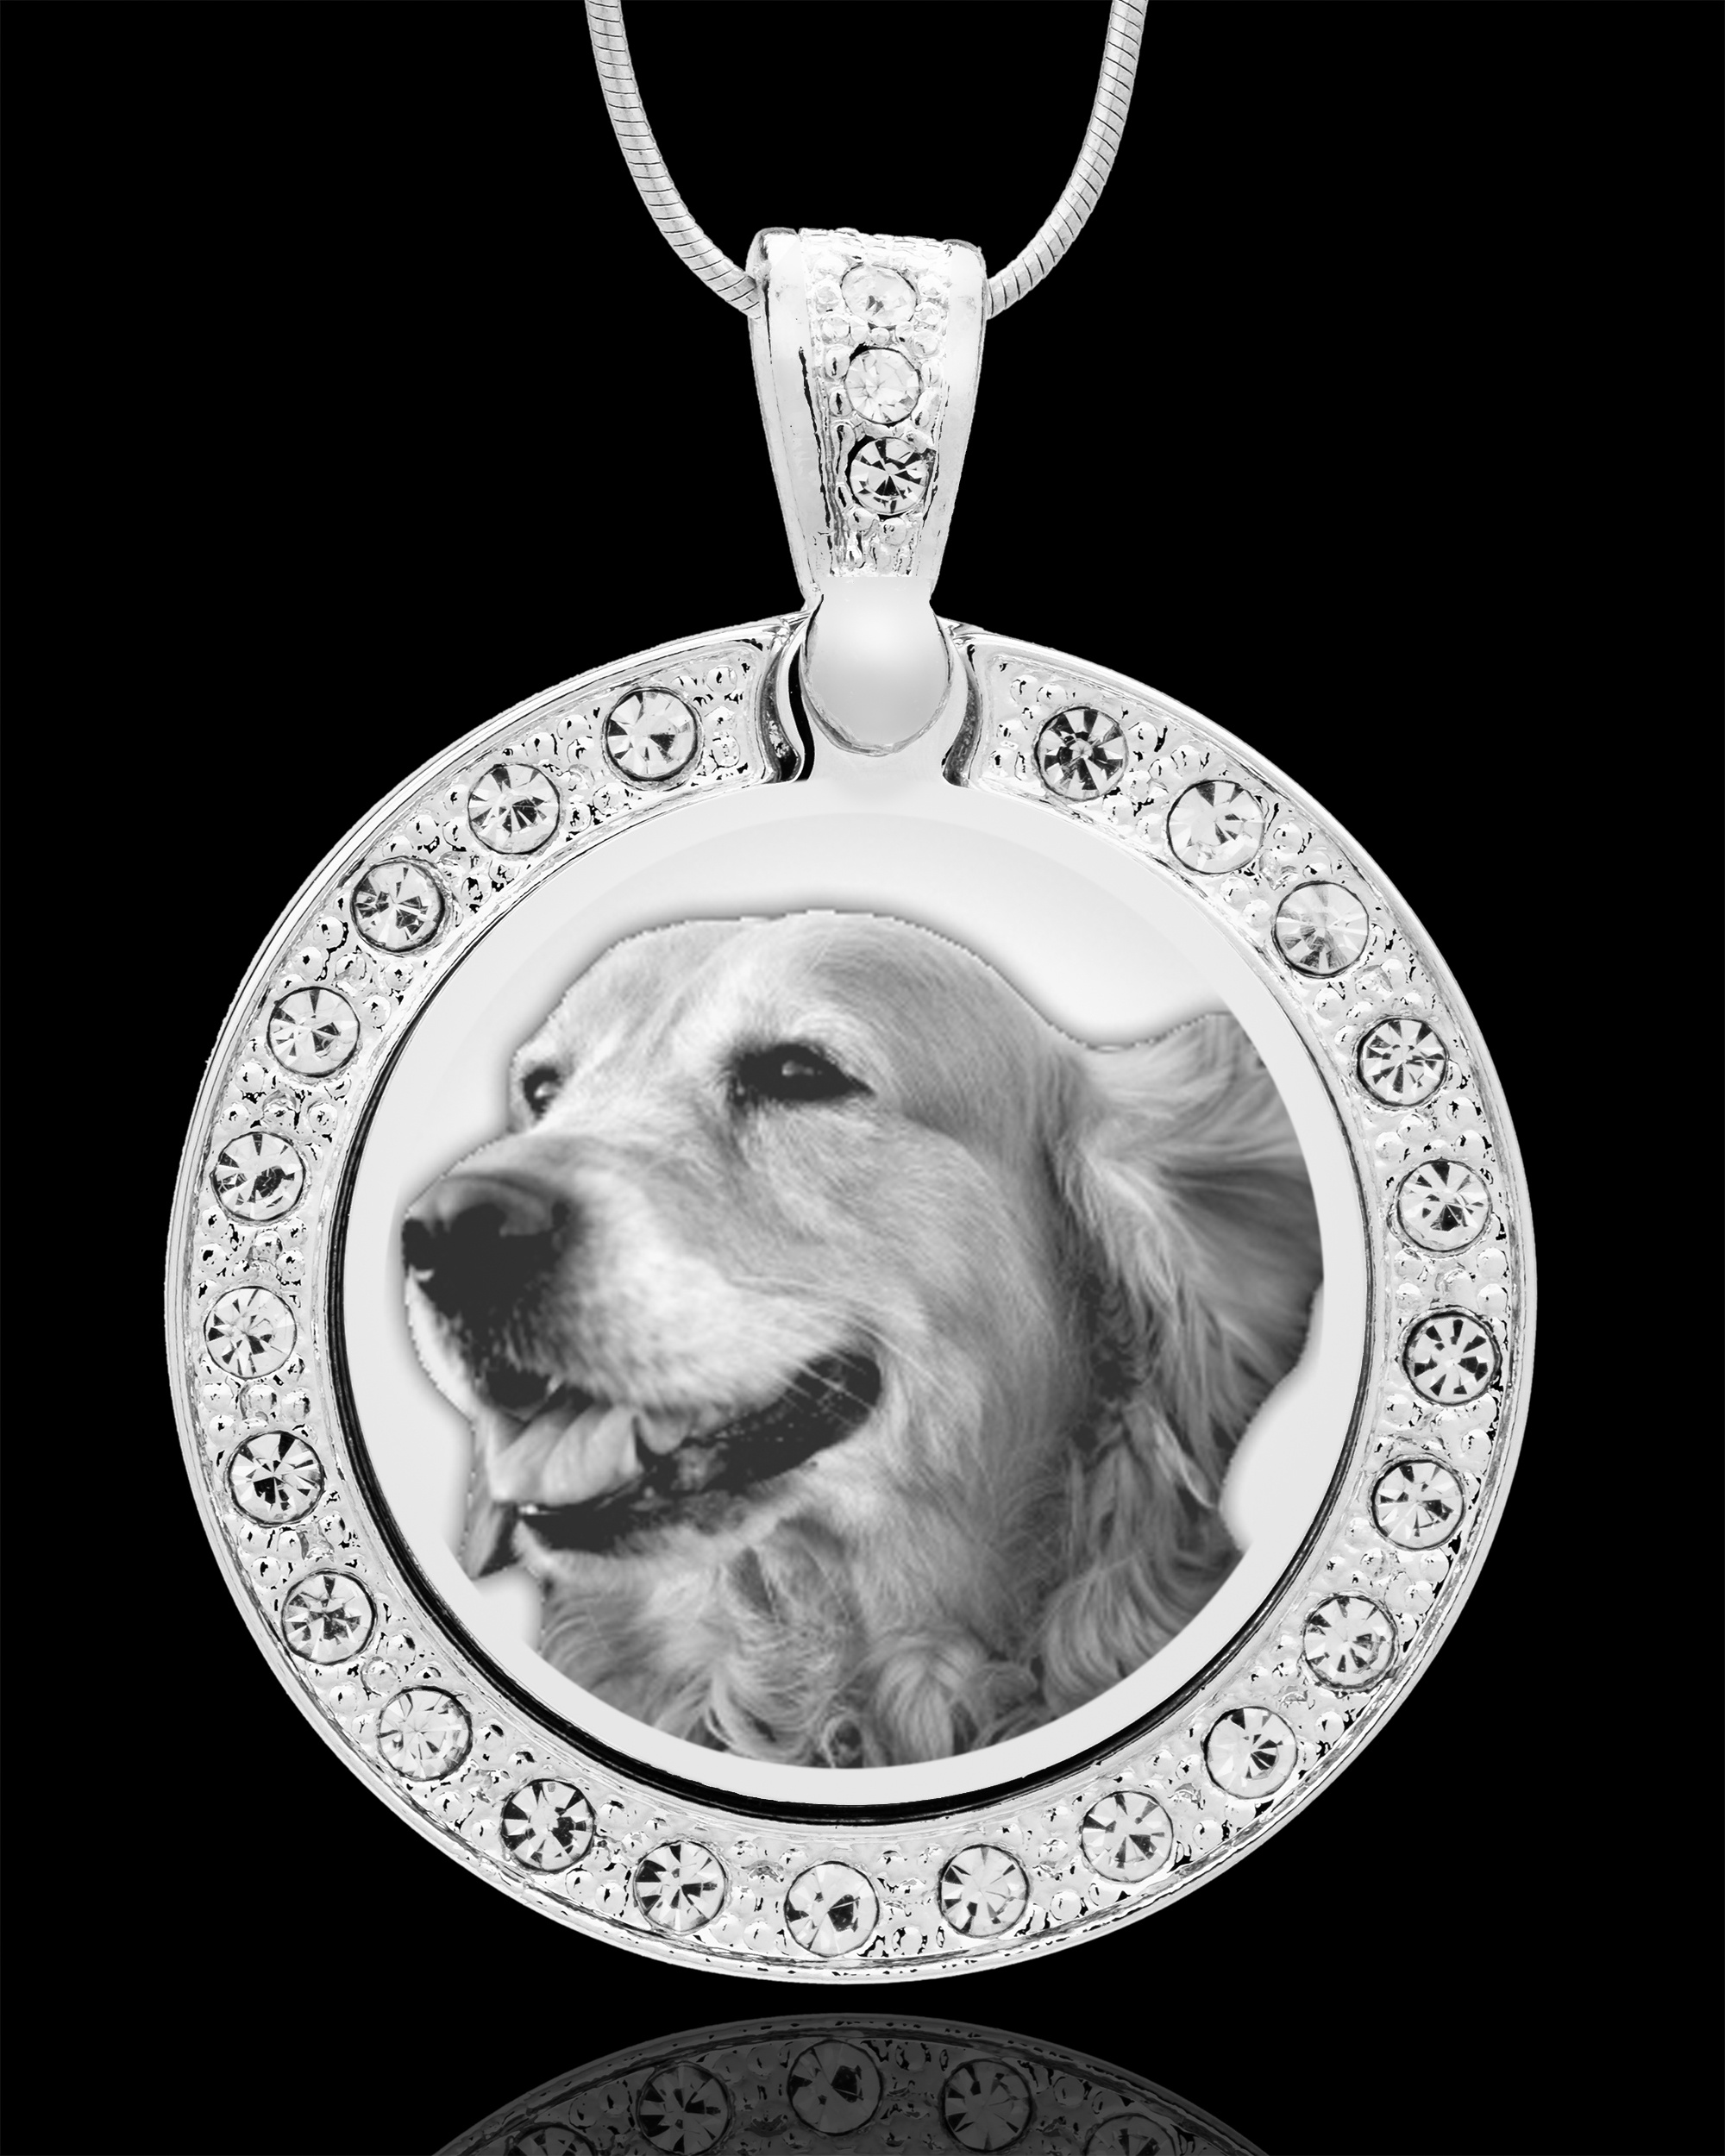 Jewelry Keepsakes81-3858Photo Eng Gem Circle Pet Pendant Stainless.jpg809